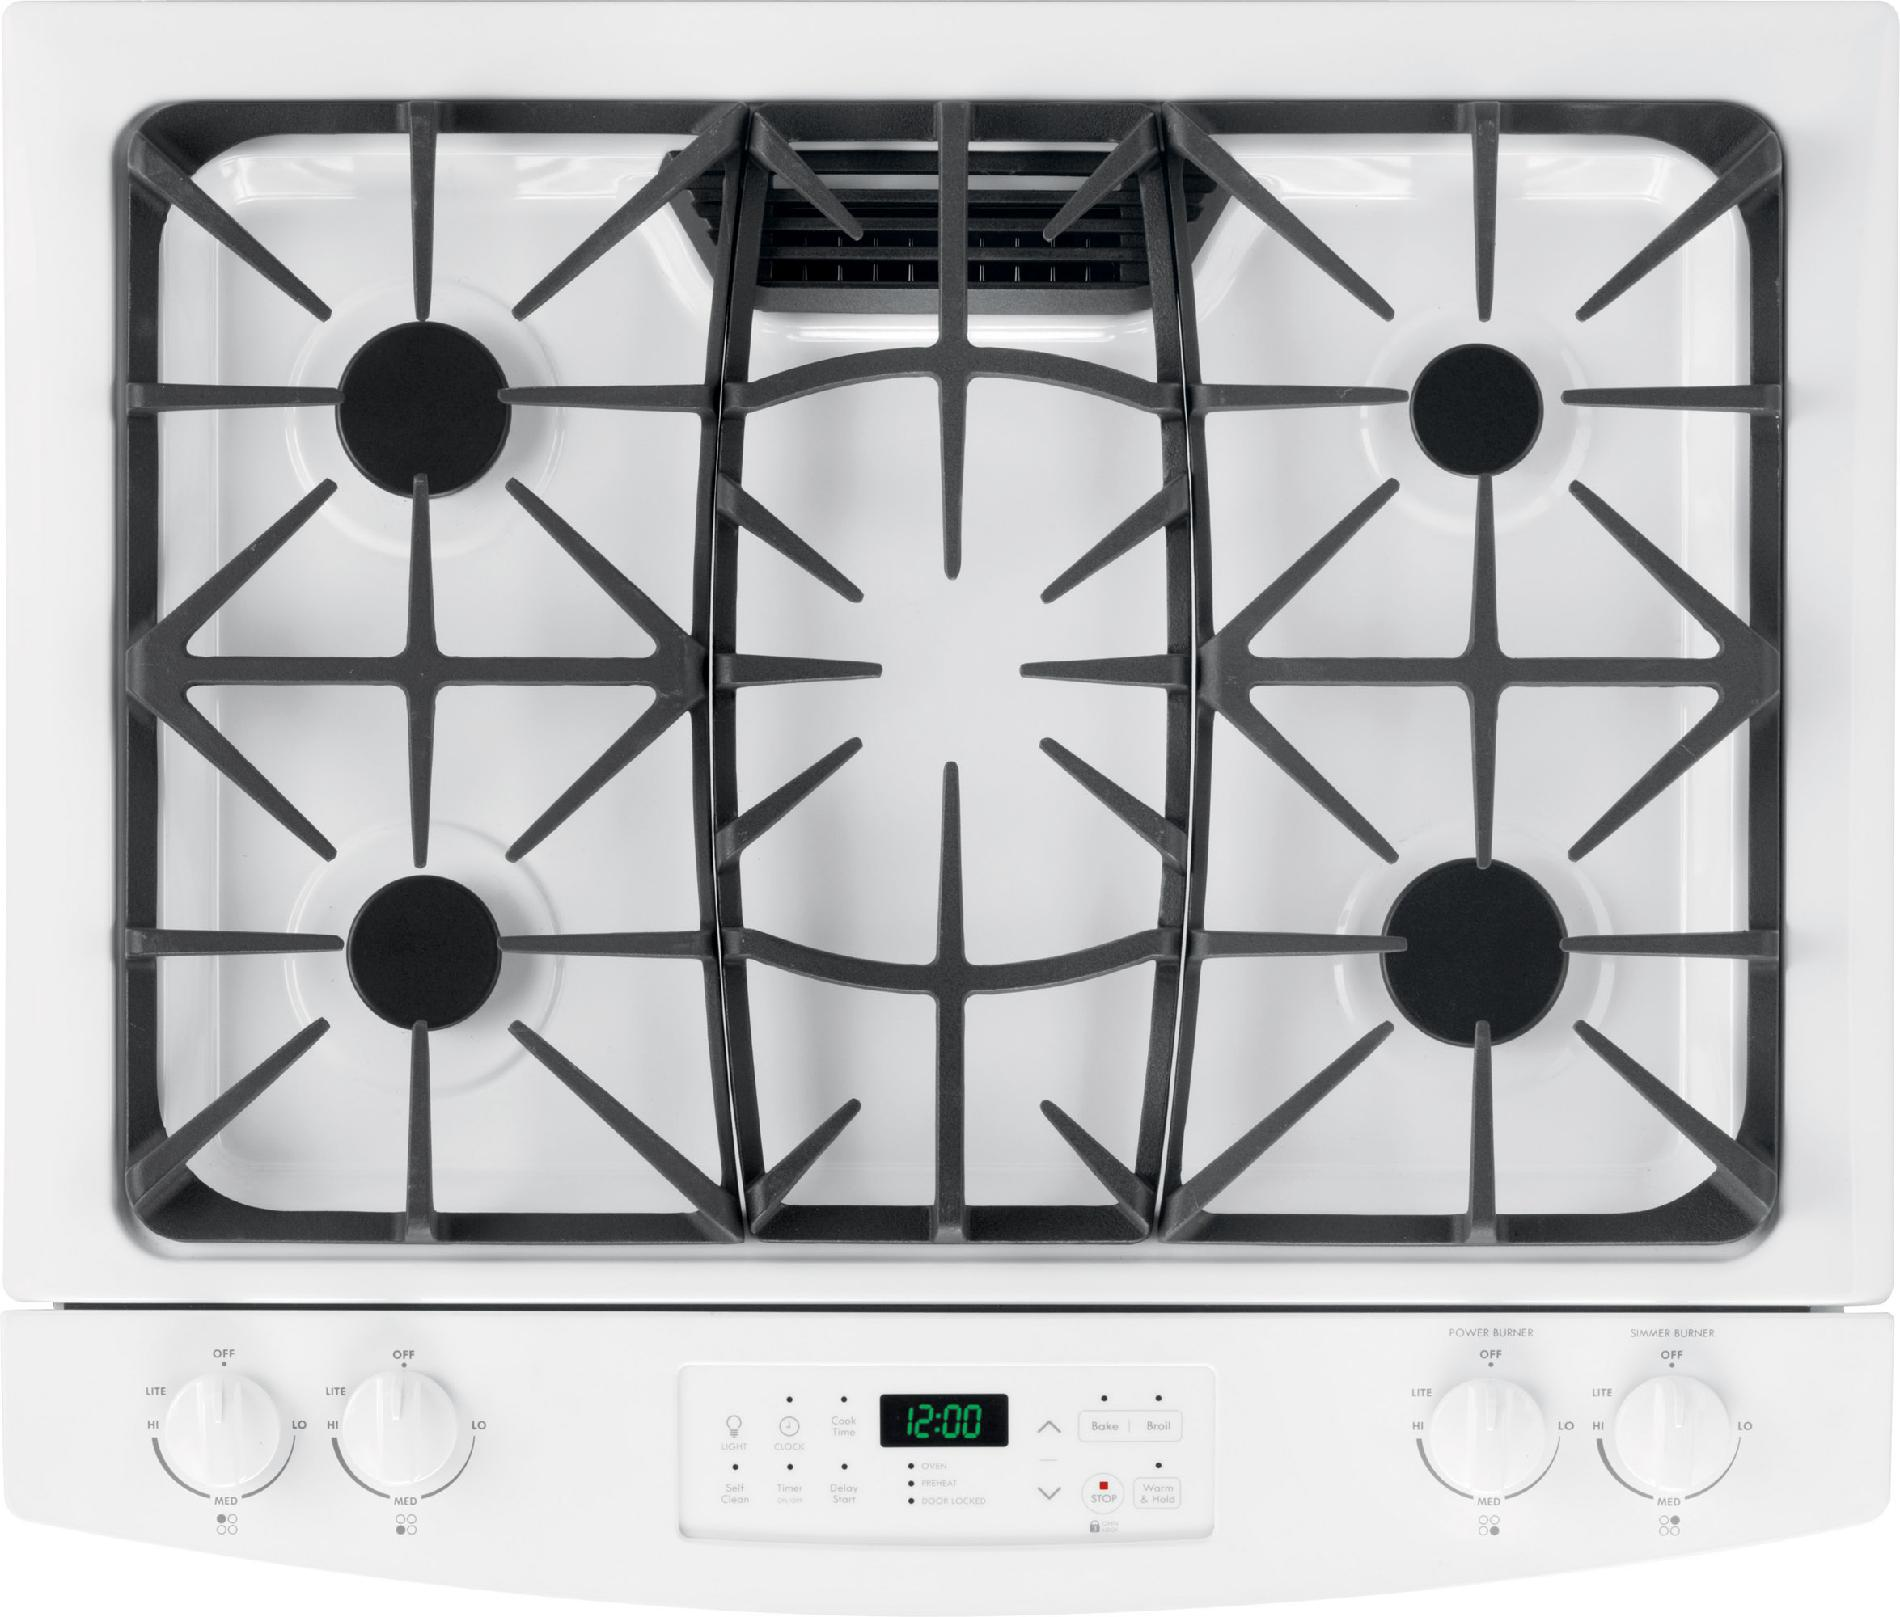 Kenmore 32602 4.5 cu. ft. Slide-In Gas Range - White